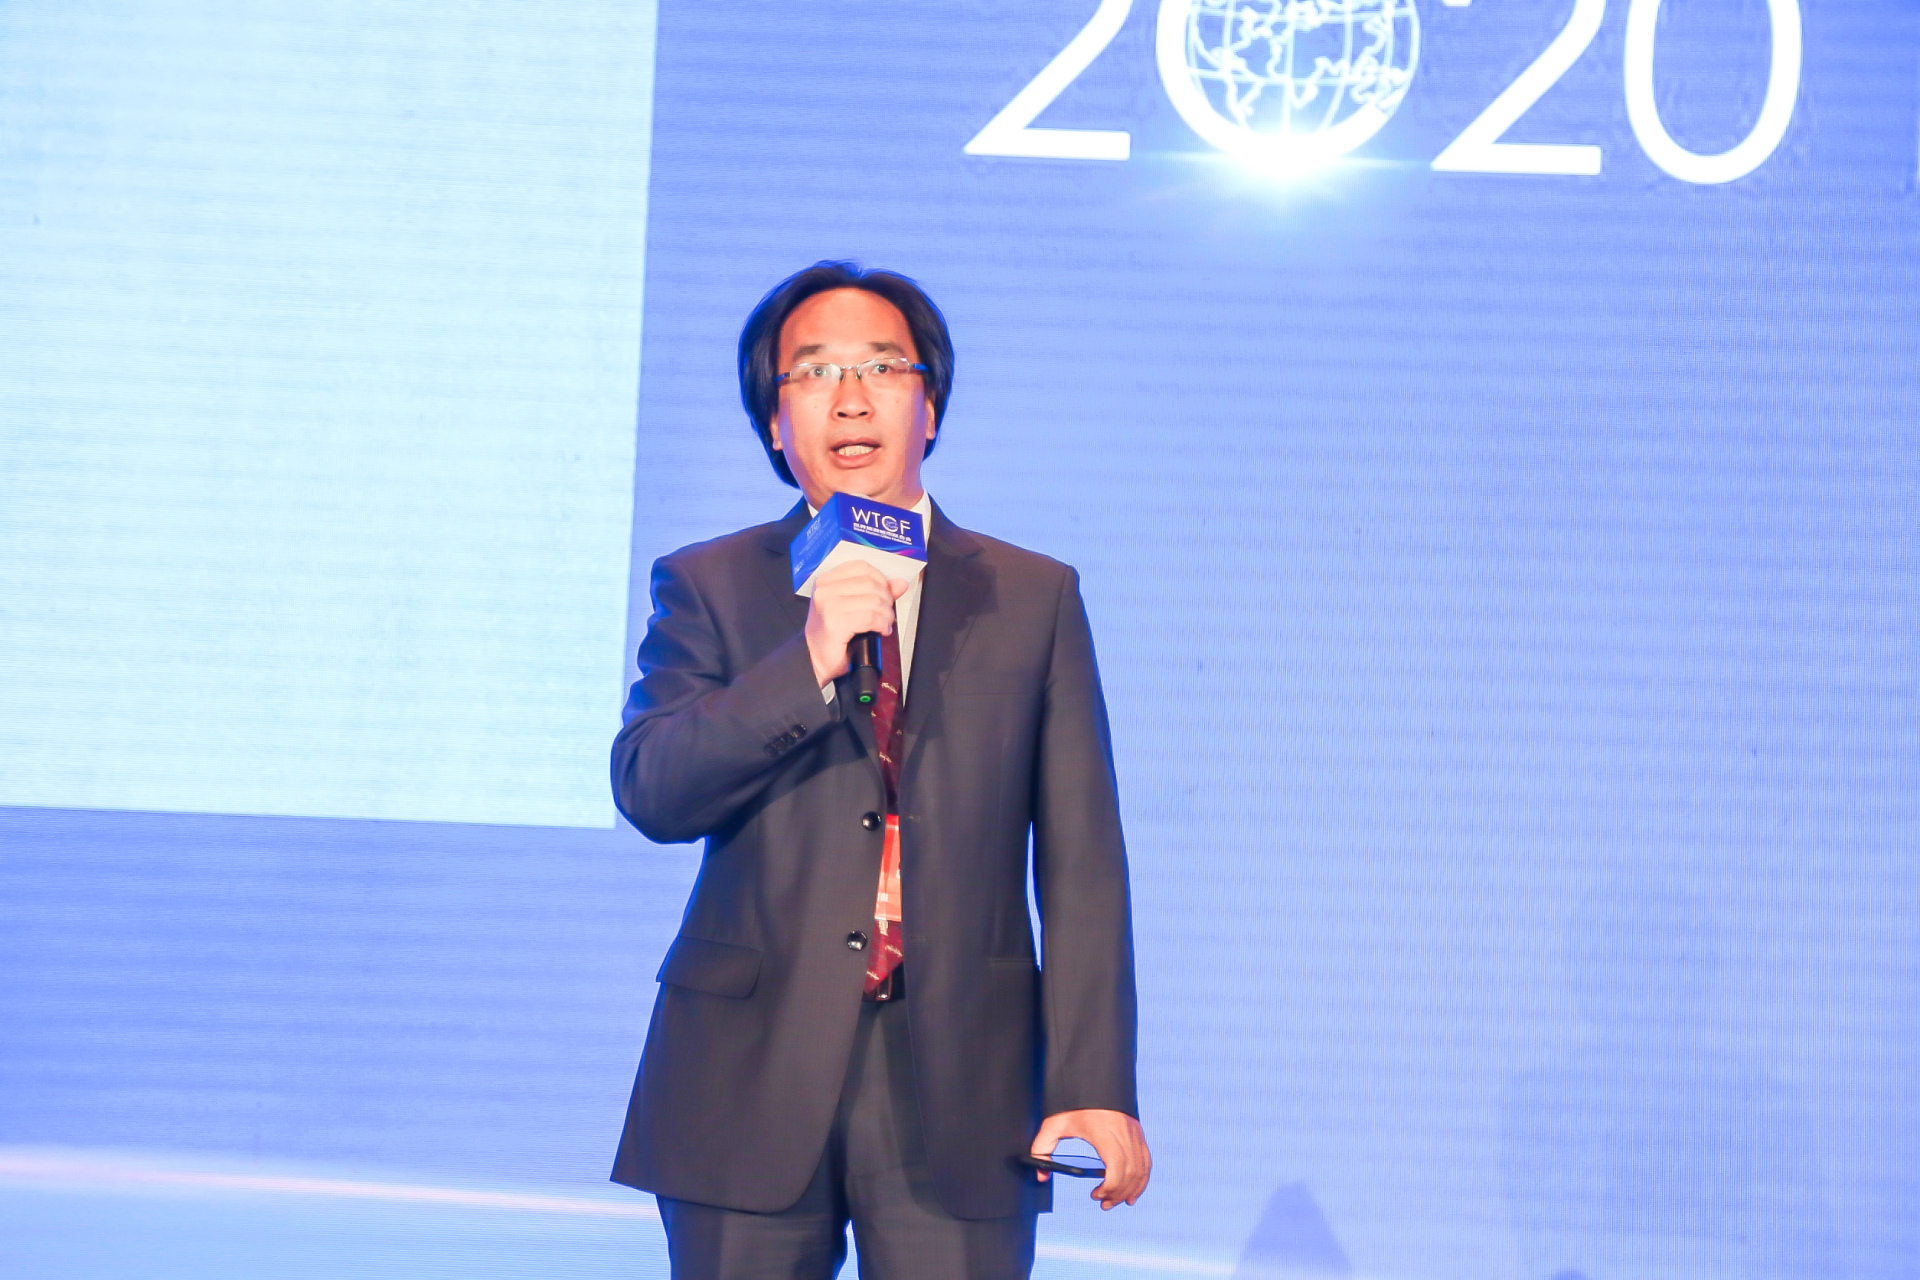 Tiger Wu, WTCF Expert, Professor of Peking University, is moderating a thematic forum. The theme of the forum is: Tourism as a catalyst for the revitalization of the world economy.